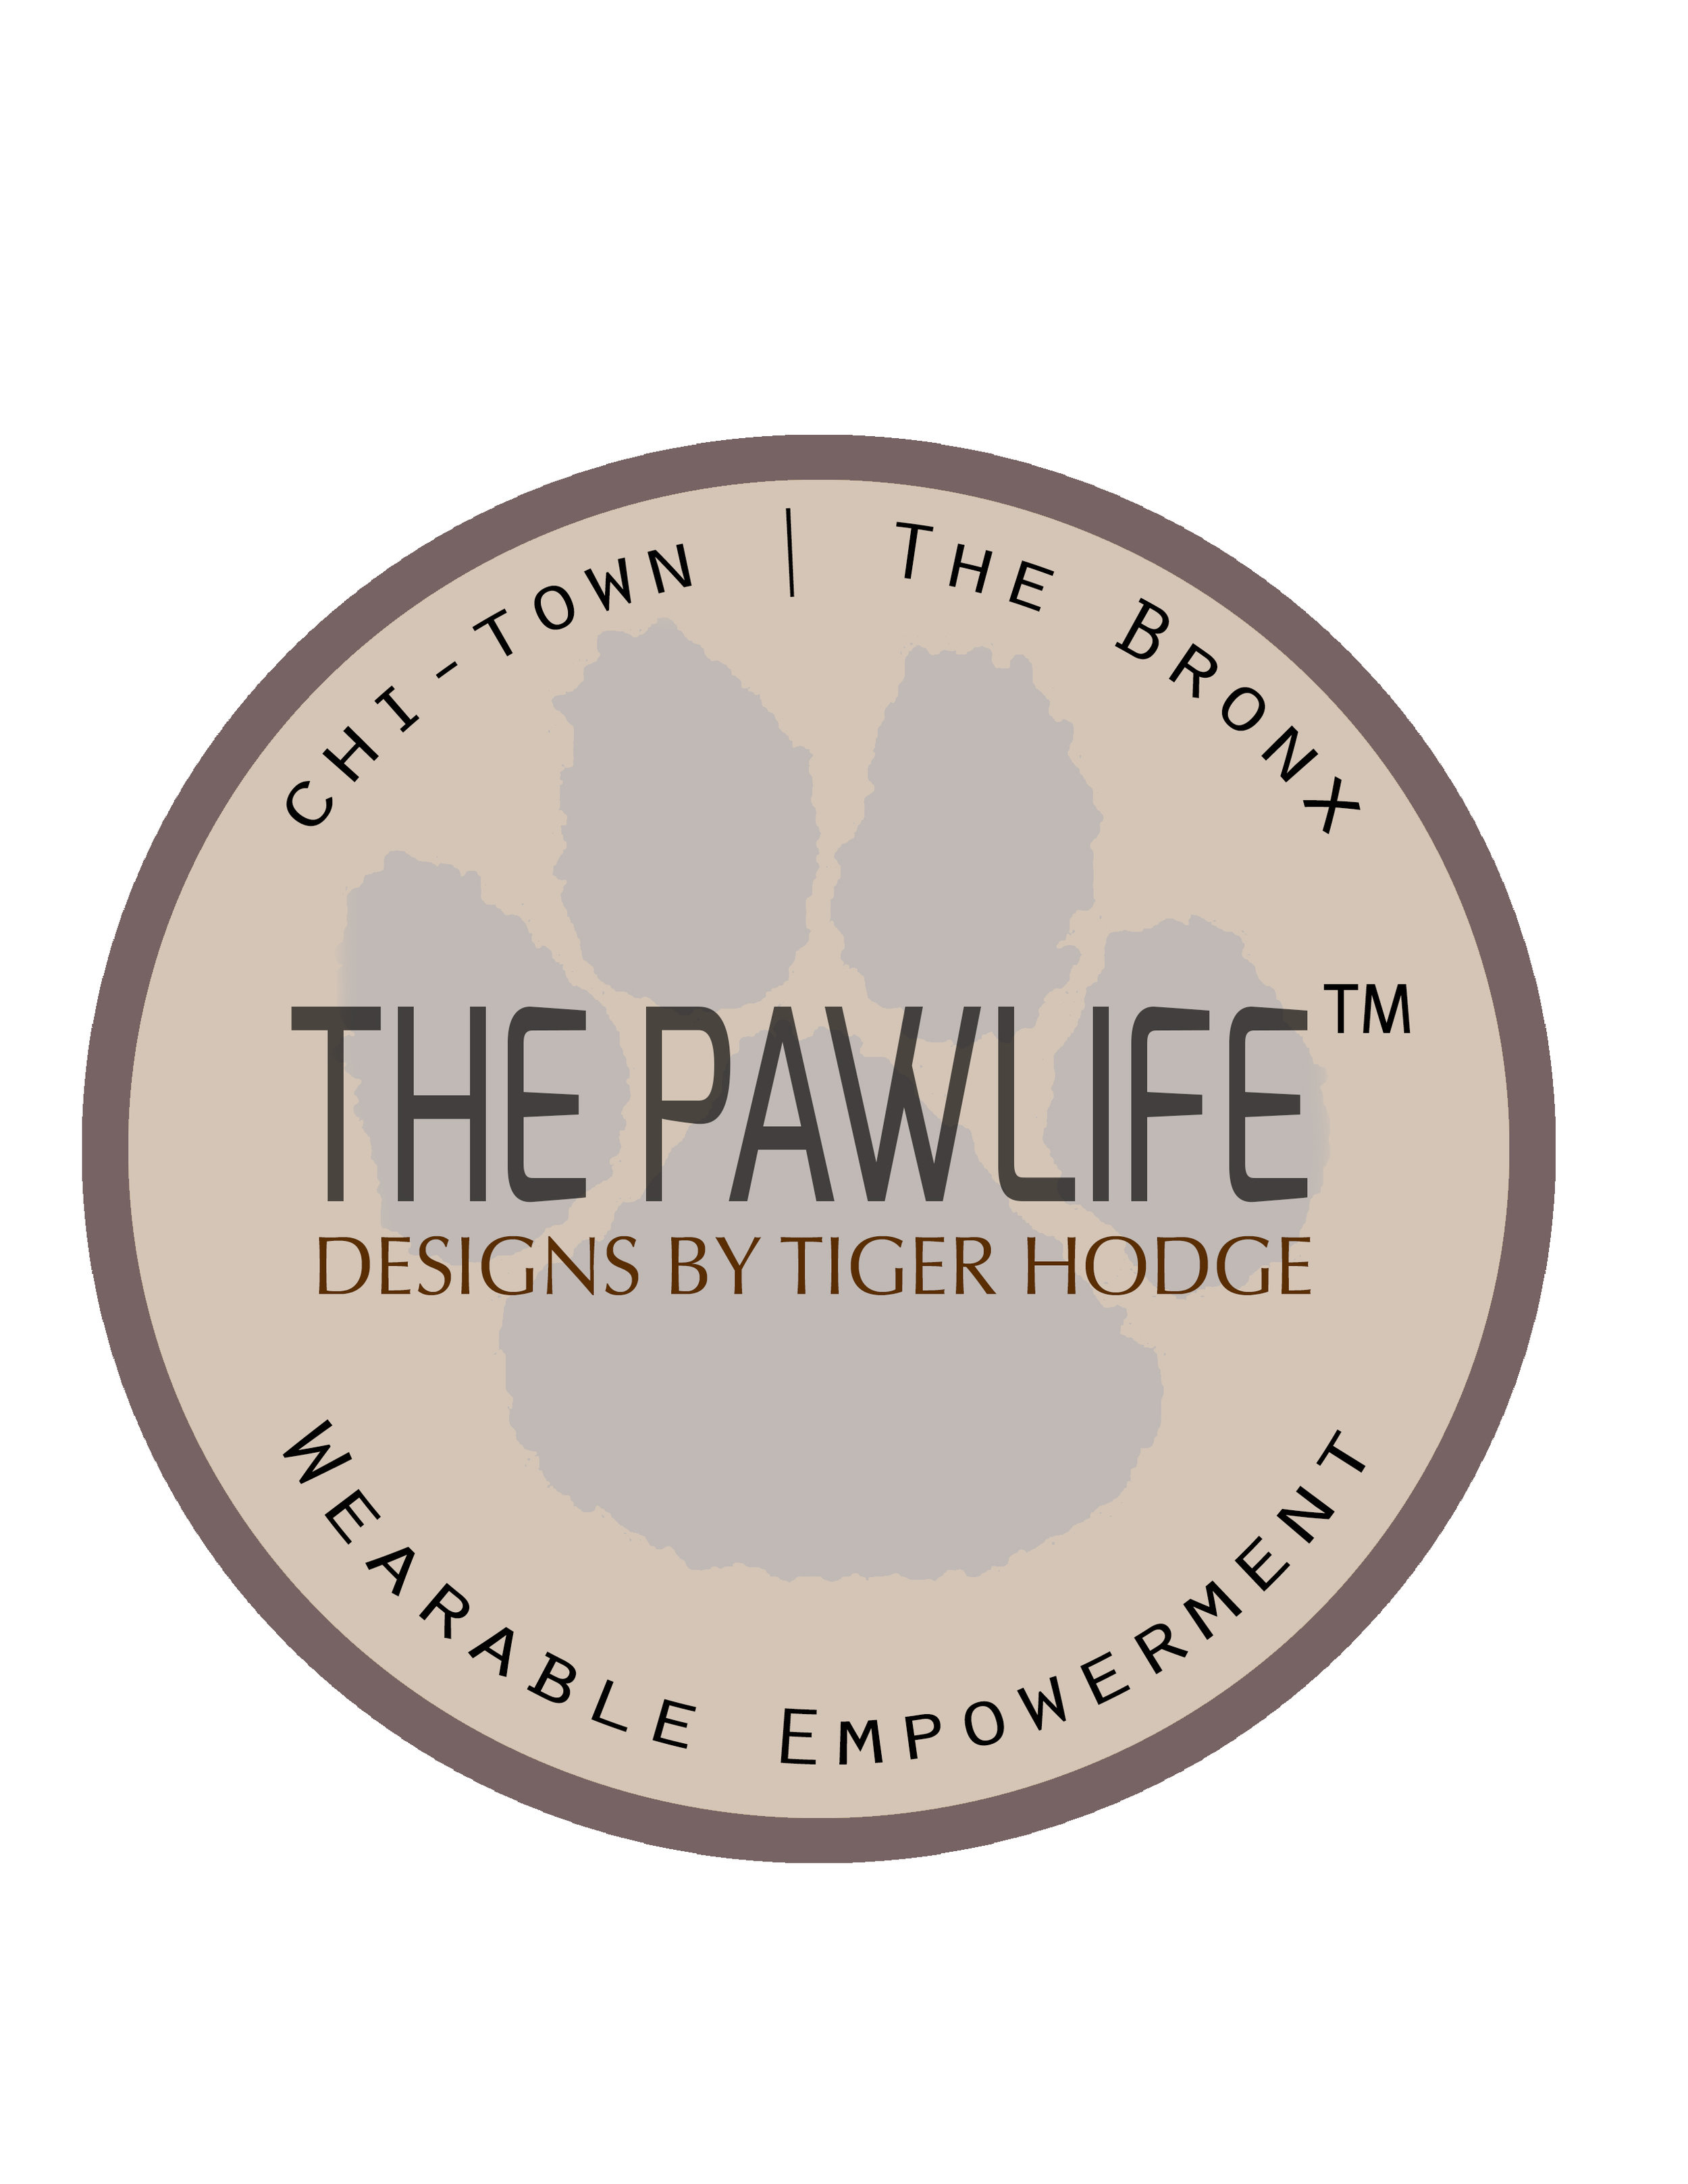 THE PAWLIFE by Tiger Hodge - I have always been outspoken and feel it is necessary to make both purposeful and powerful statements. My tagline,